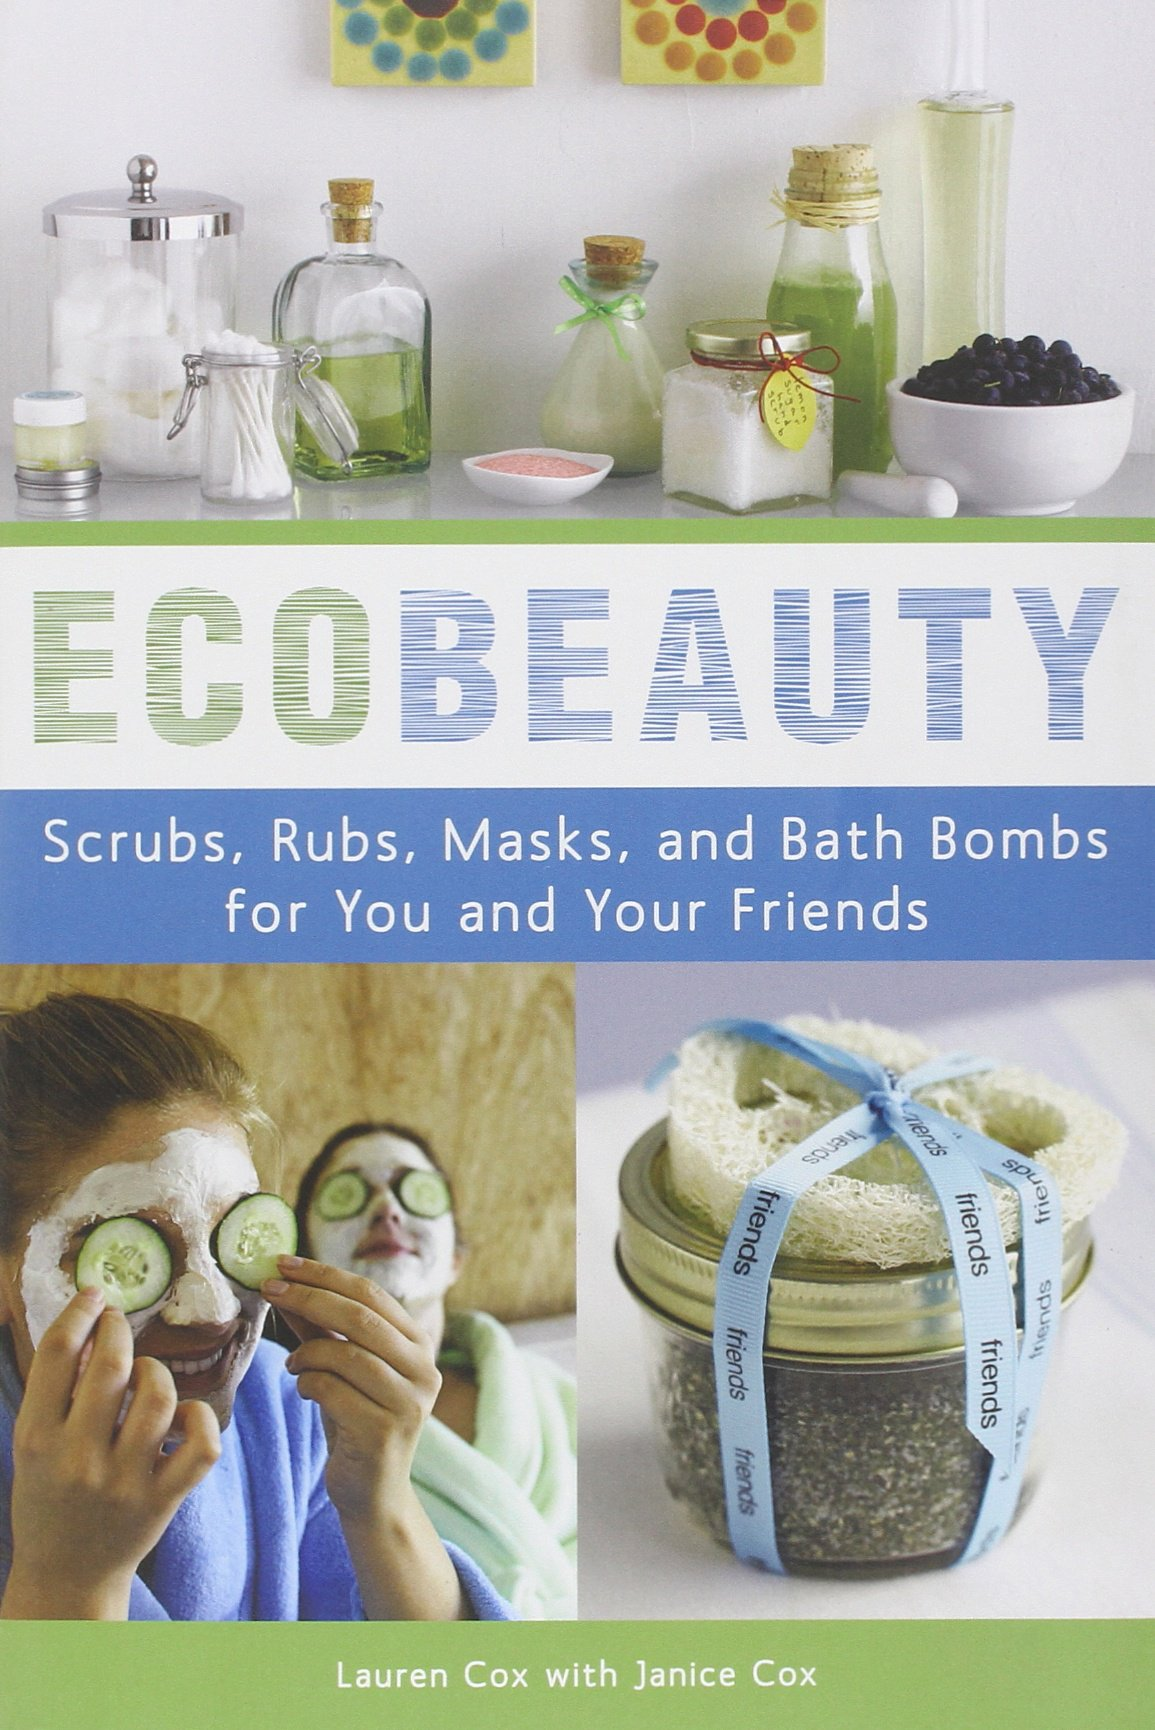 Ecobeauty: Scrubs, Rubs, Masks, And Bath Bombs For You And Your Friends:  Amazon: Lauren Cox, Janice Cox: 8601401106234: Books